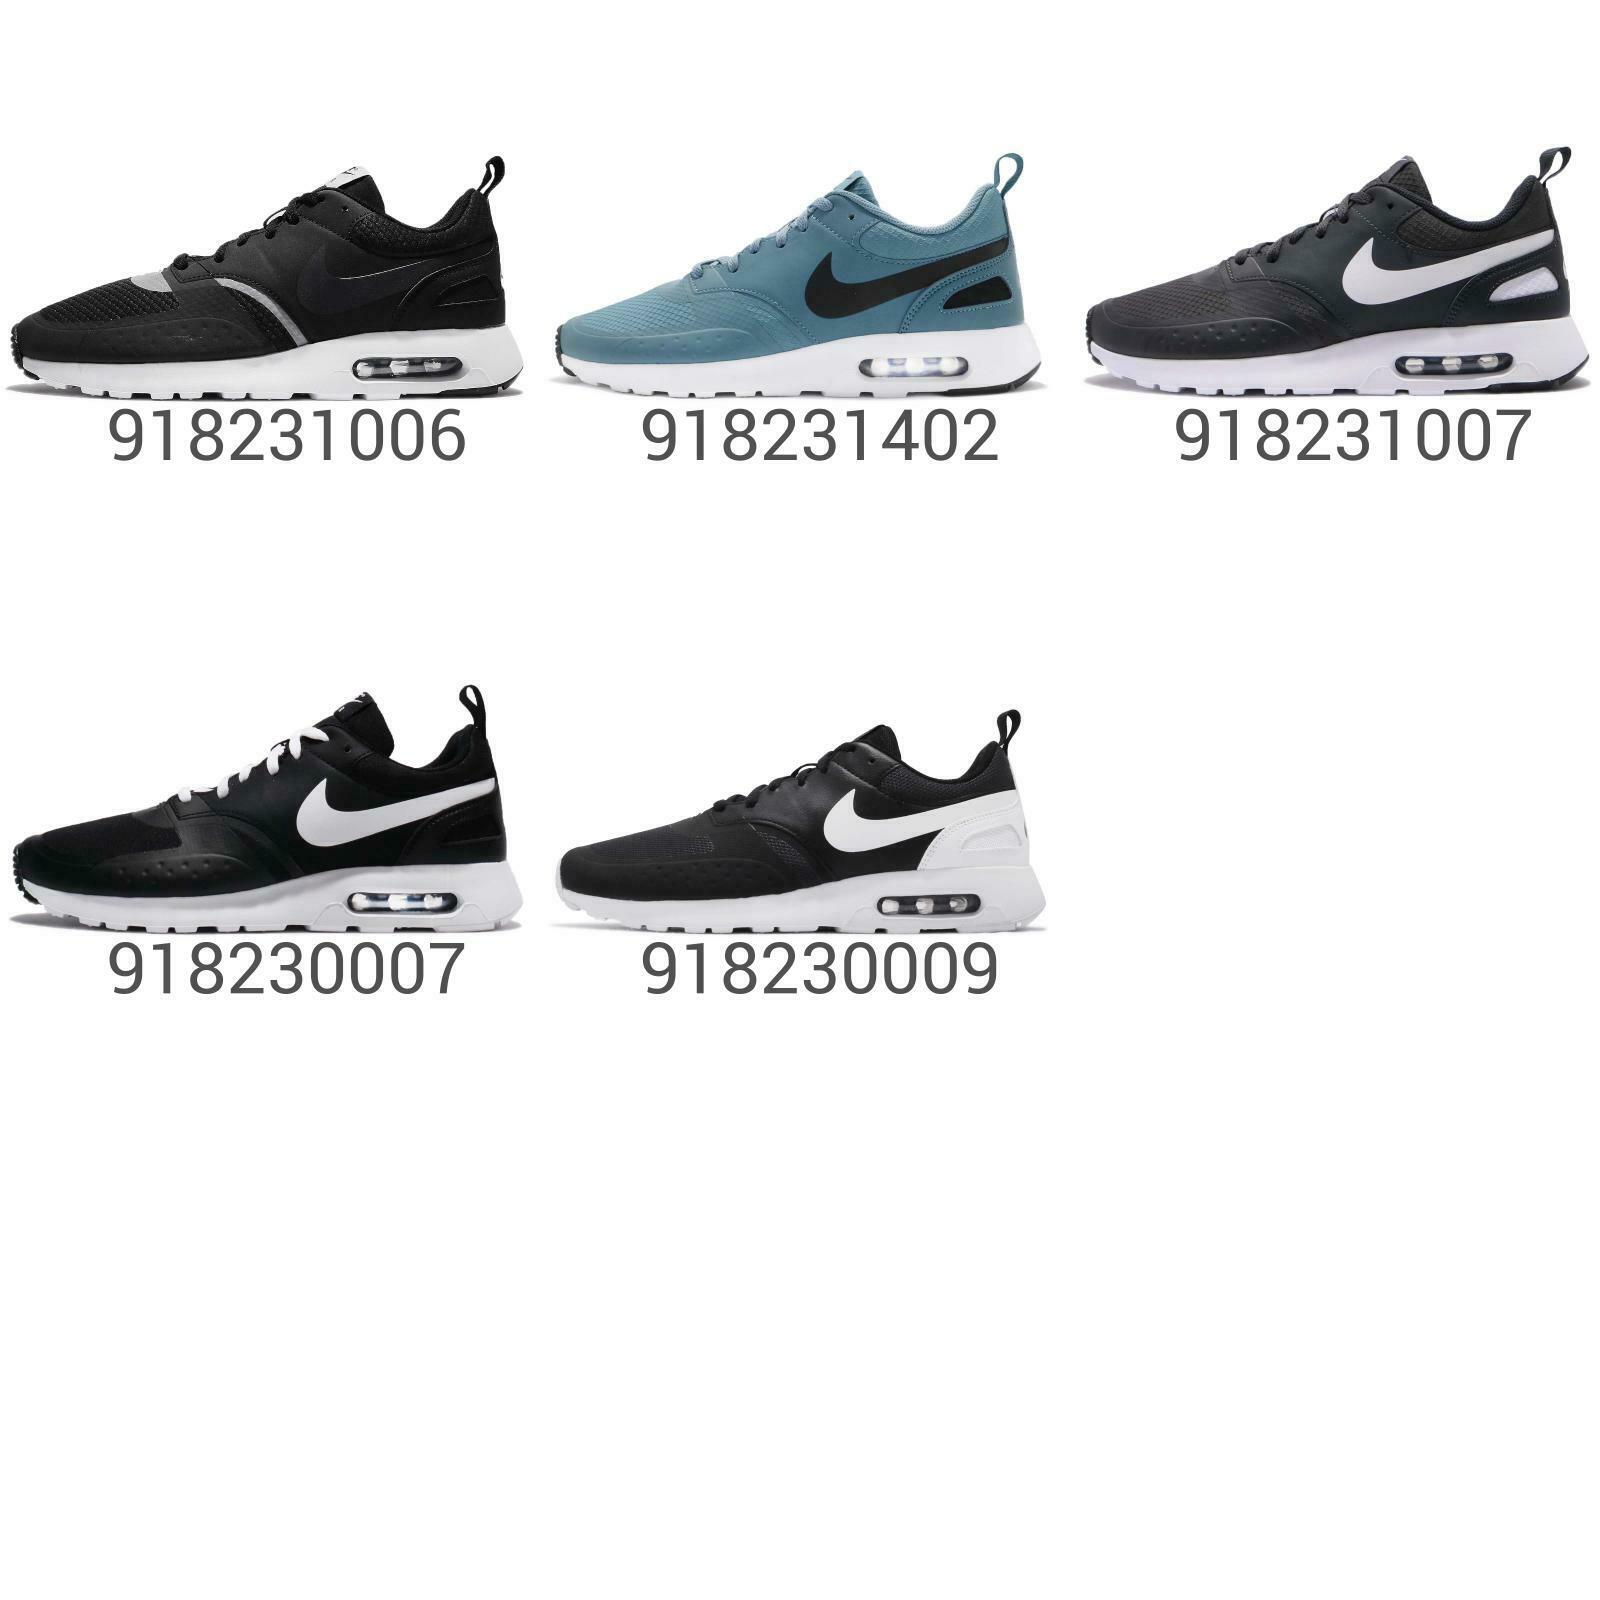 Nike Air Max Vision   SE Mens Running shoes Athletic Sneakers Pick 1